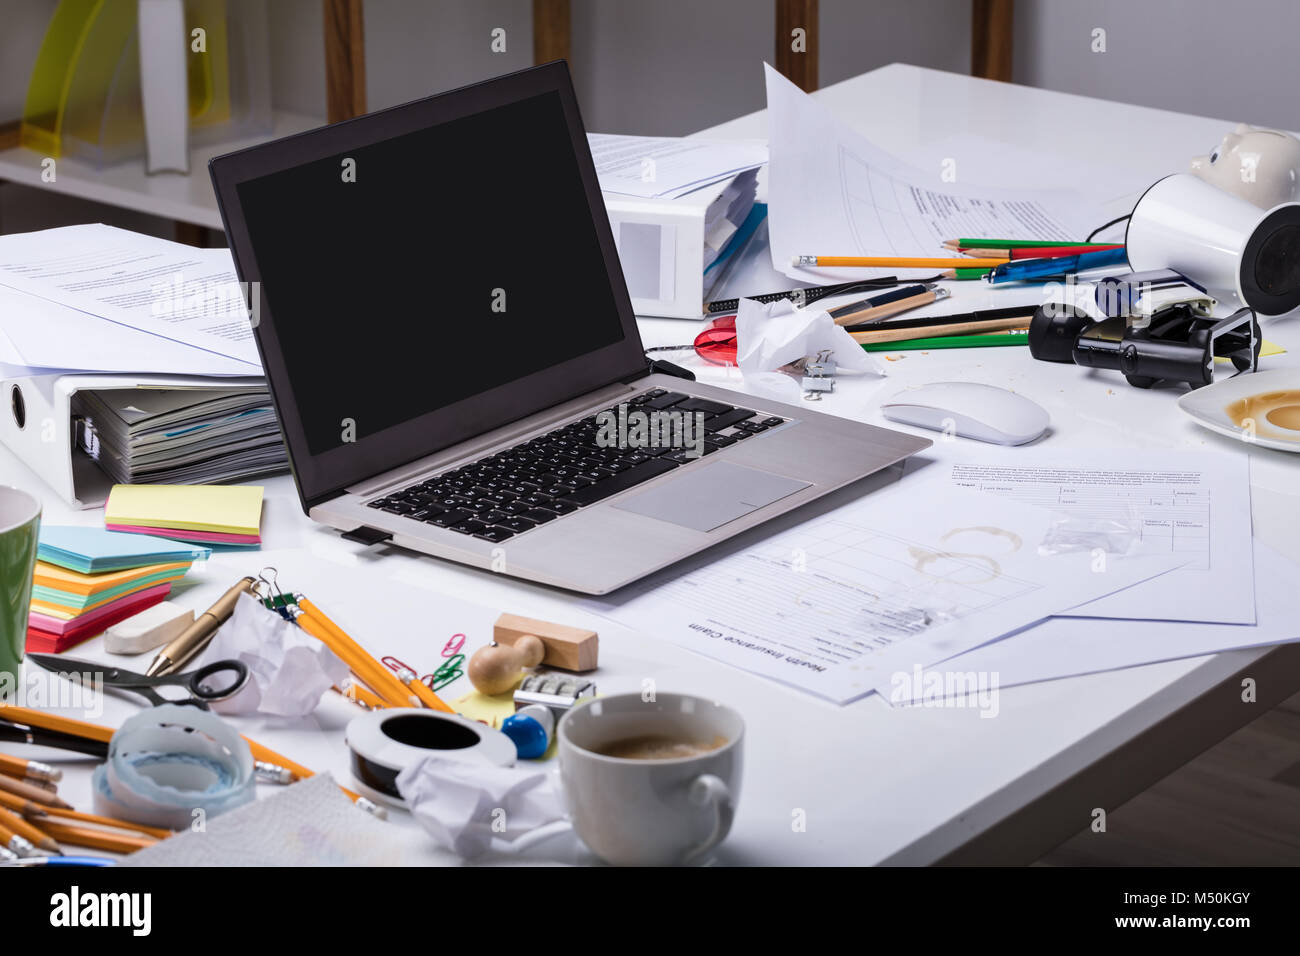 An Open Laptop On The Messy Desk With Coffee Cup And Documents At Workplace - Stock Image